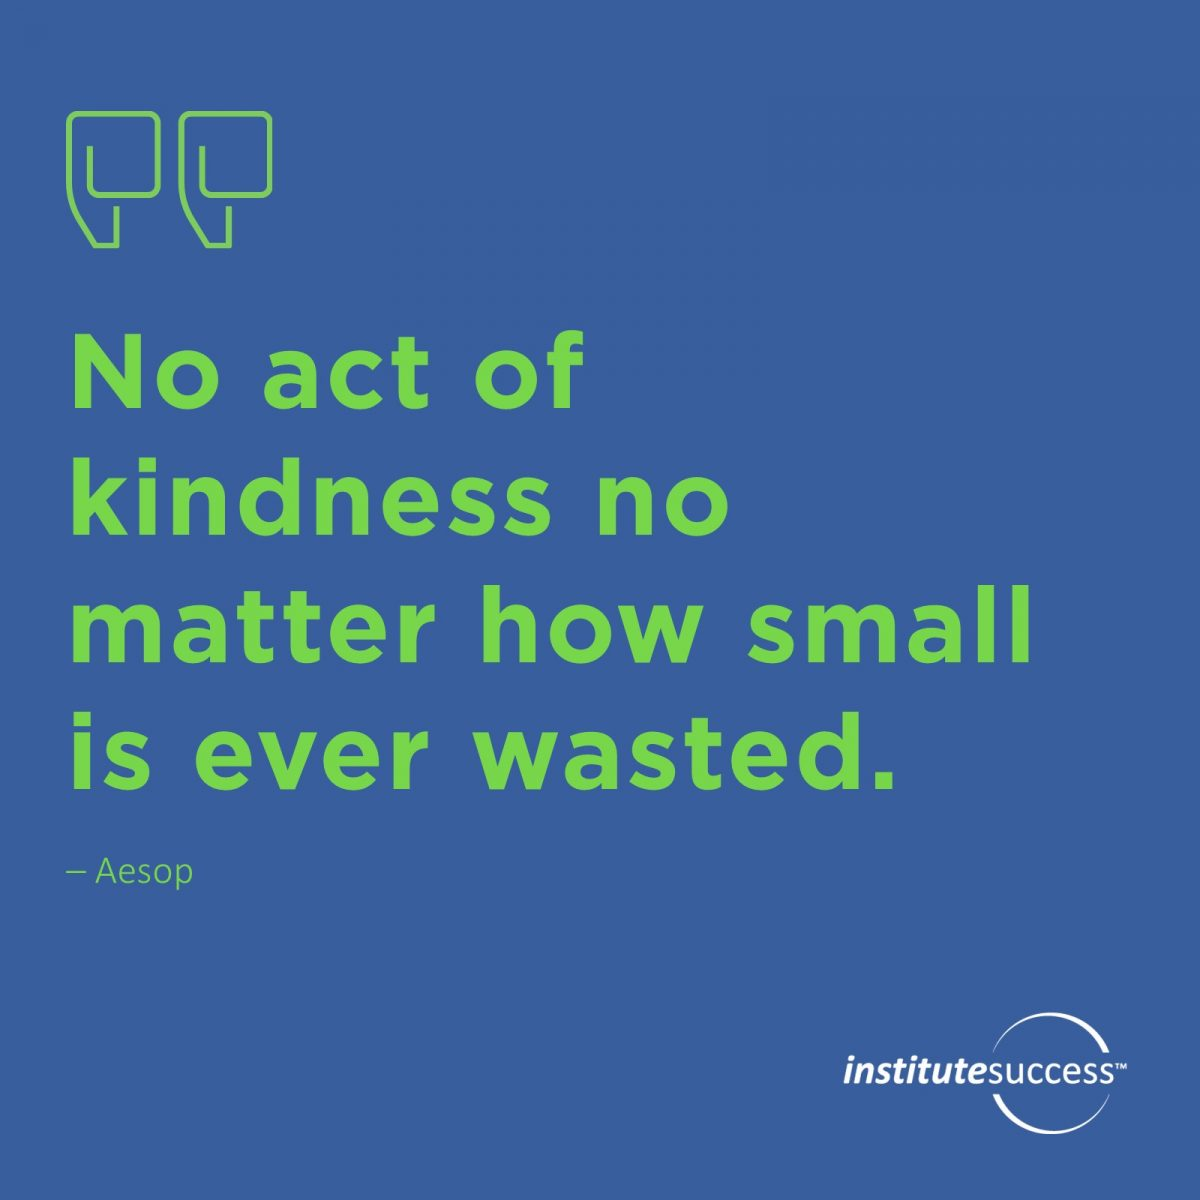 No act of kindness no matter how small is ever wasted. – Aesop